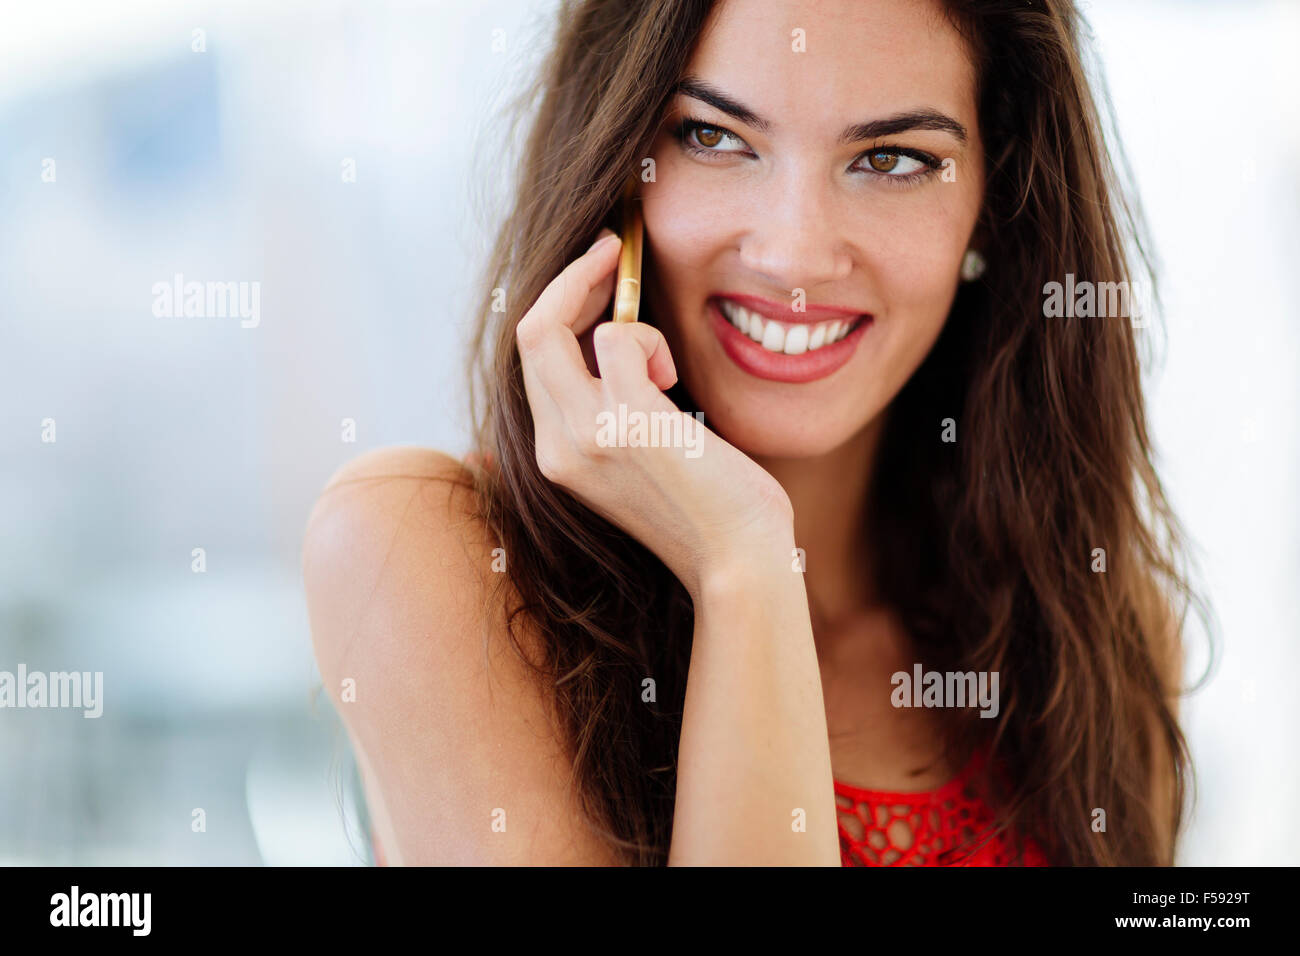 Beautiful model calling on phone and smiling - Stock Image